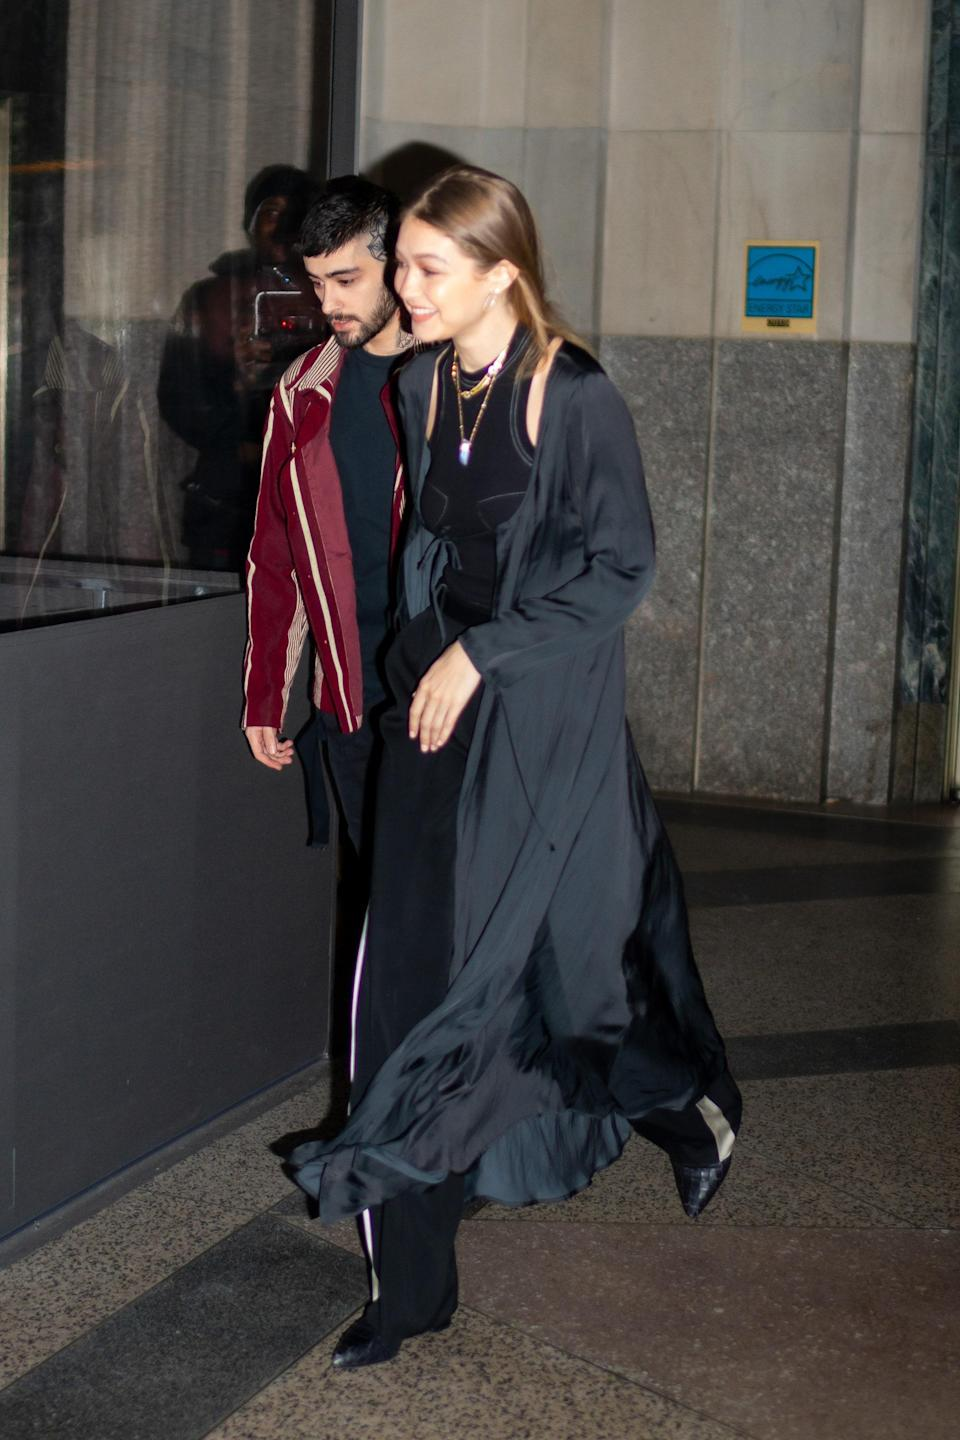 Gigi and Zayn were seen together in NYC wearing different takes on all-back outfits. While Zayn opted for a pop of color with his jacket, Gigi favored texture and length play.